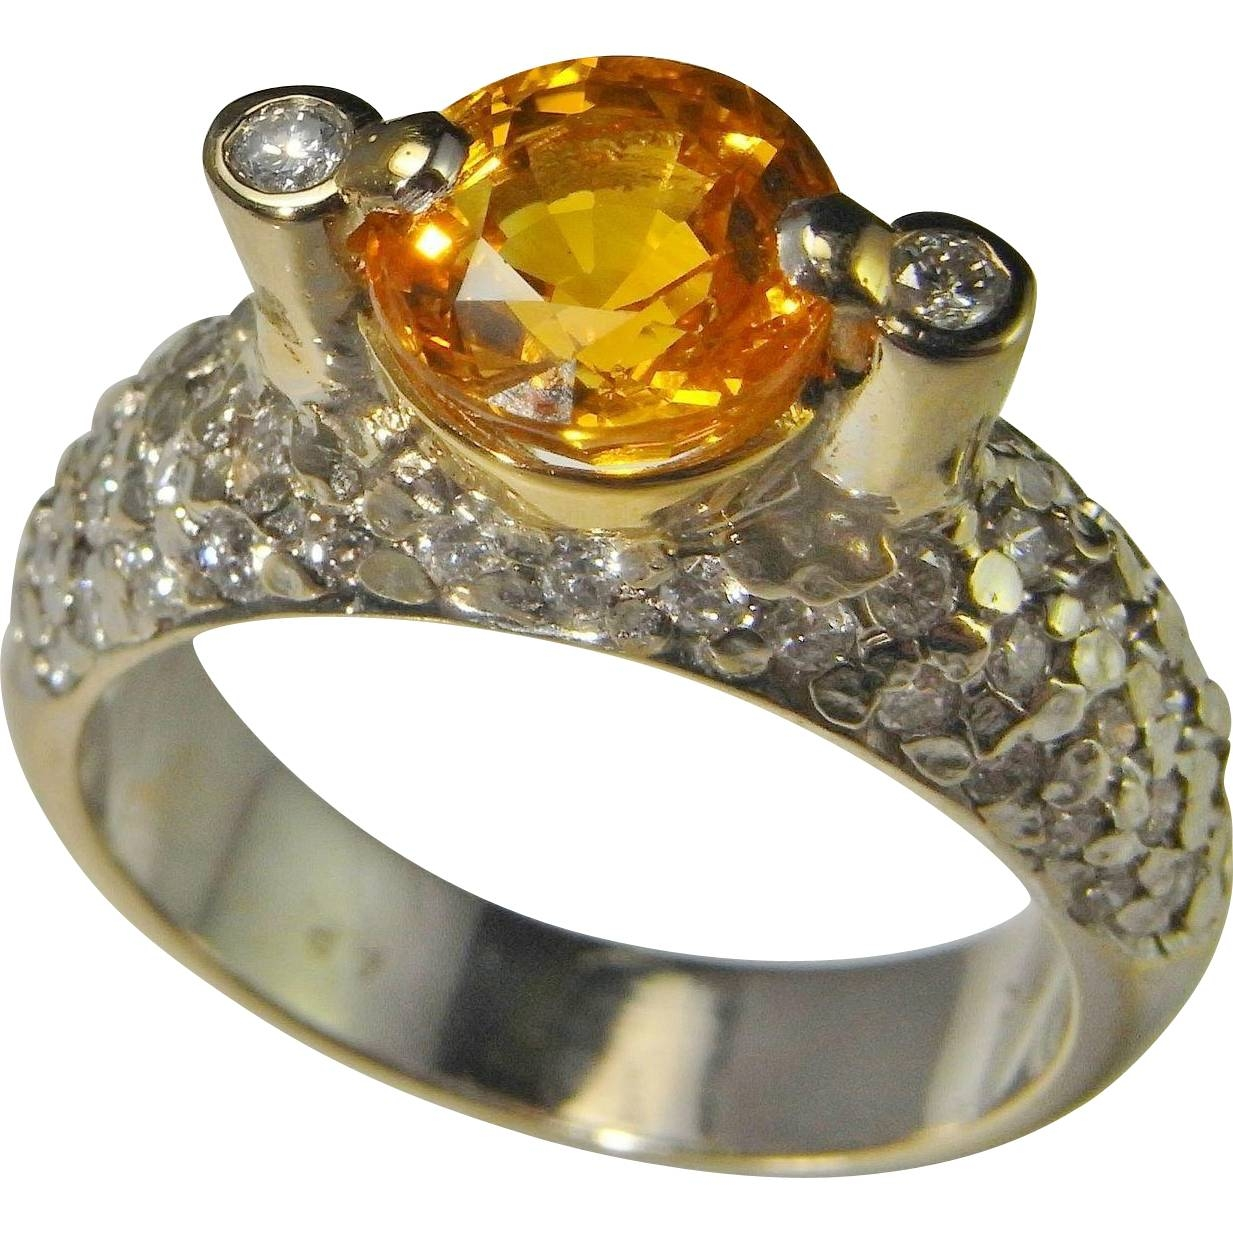 Golden Sapphire Diamond Engagement Ring Wedding Ring Anniversary Pertaining To 2017 Vintage Anniversary Rings (View 13 of 25)